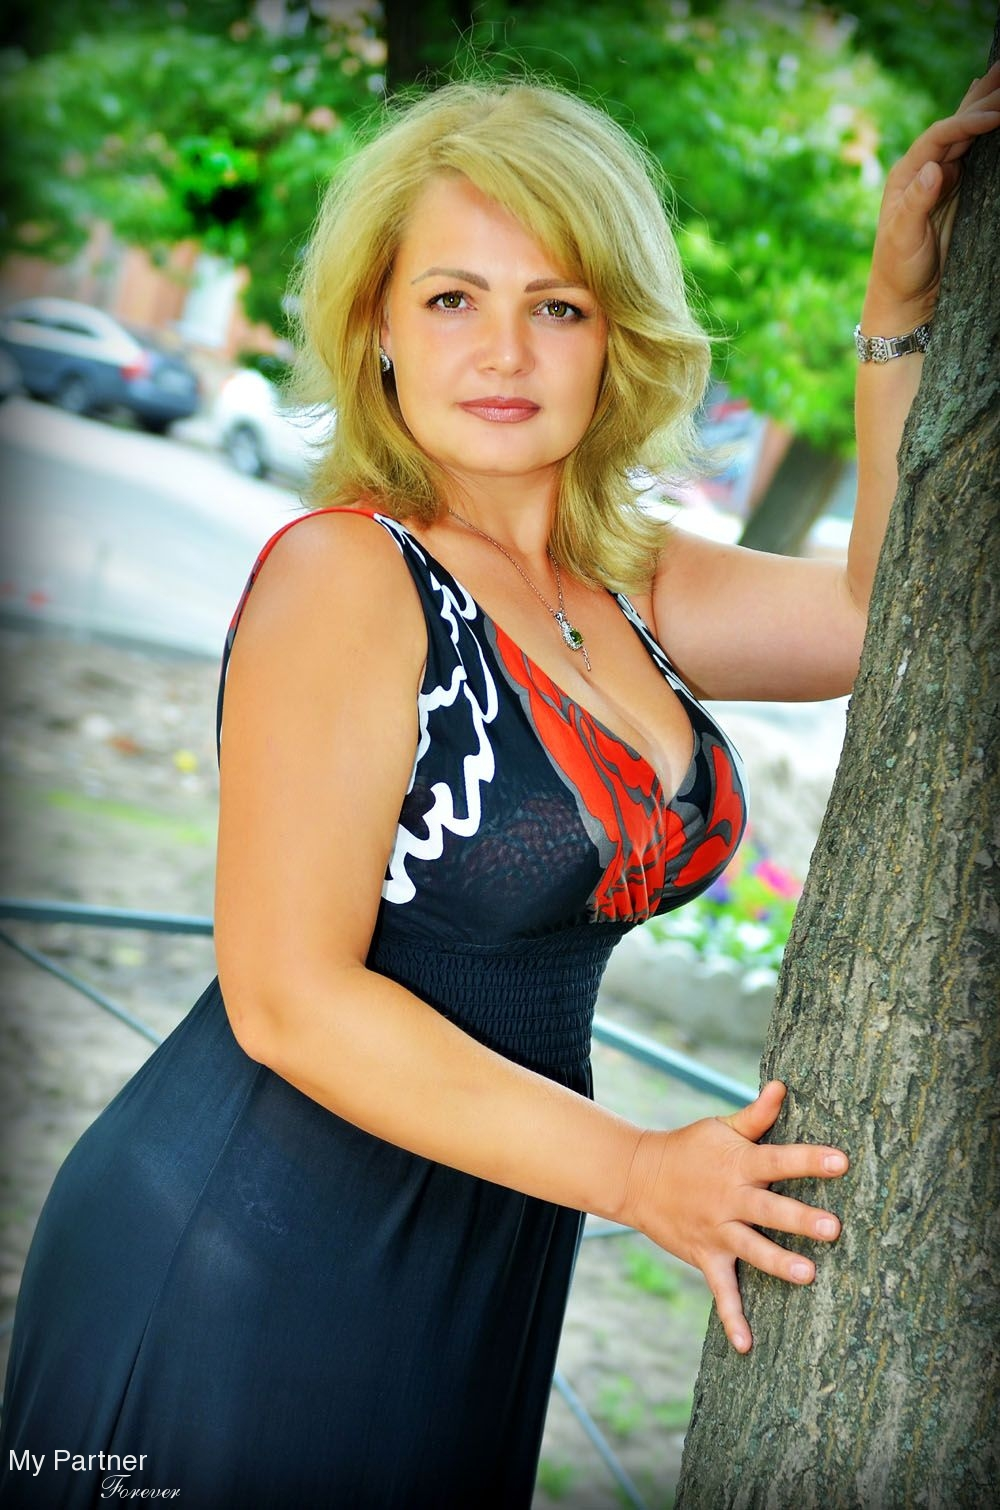 Ukraine girl dating sites